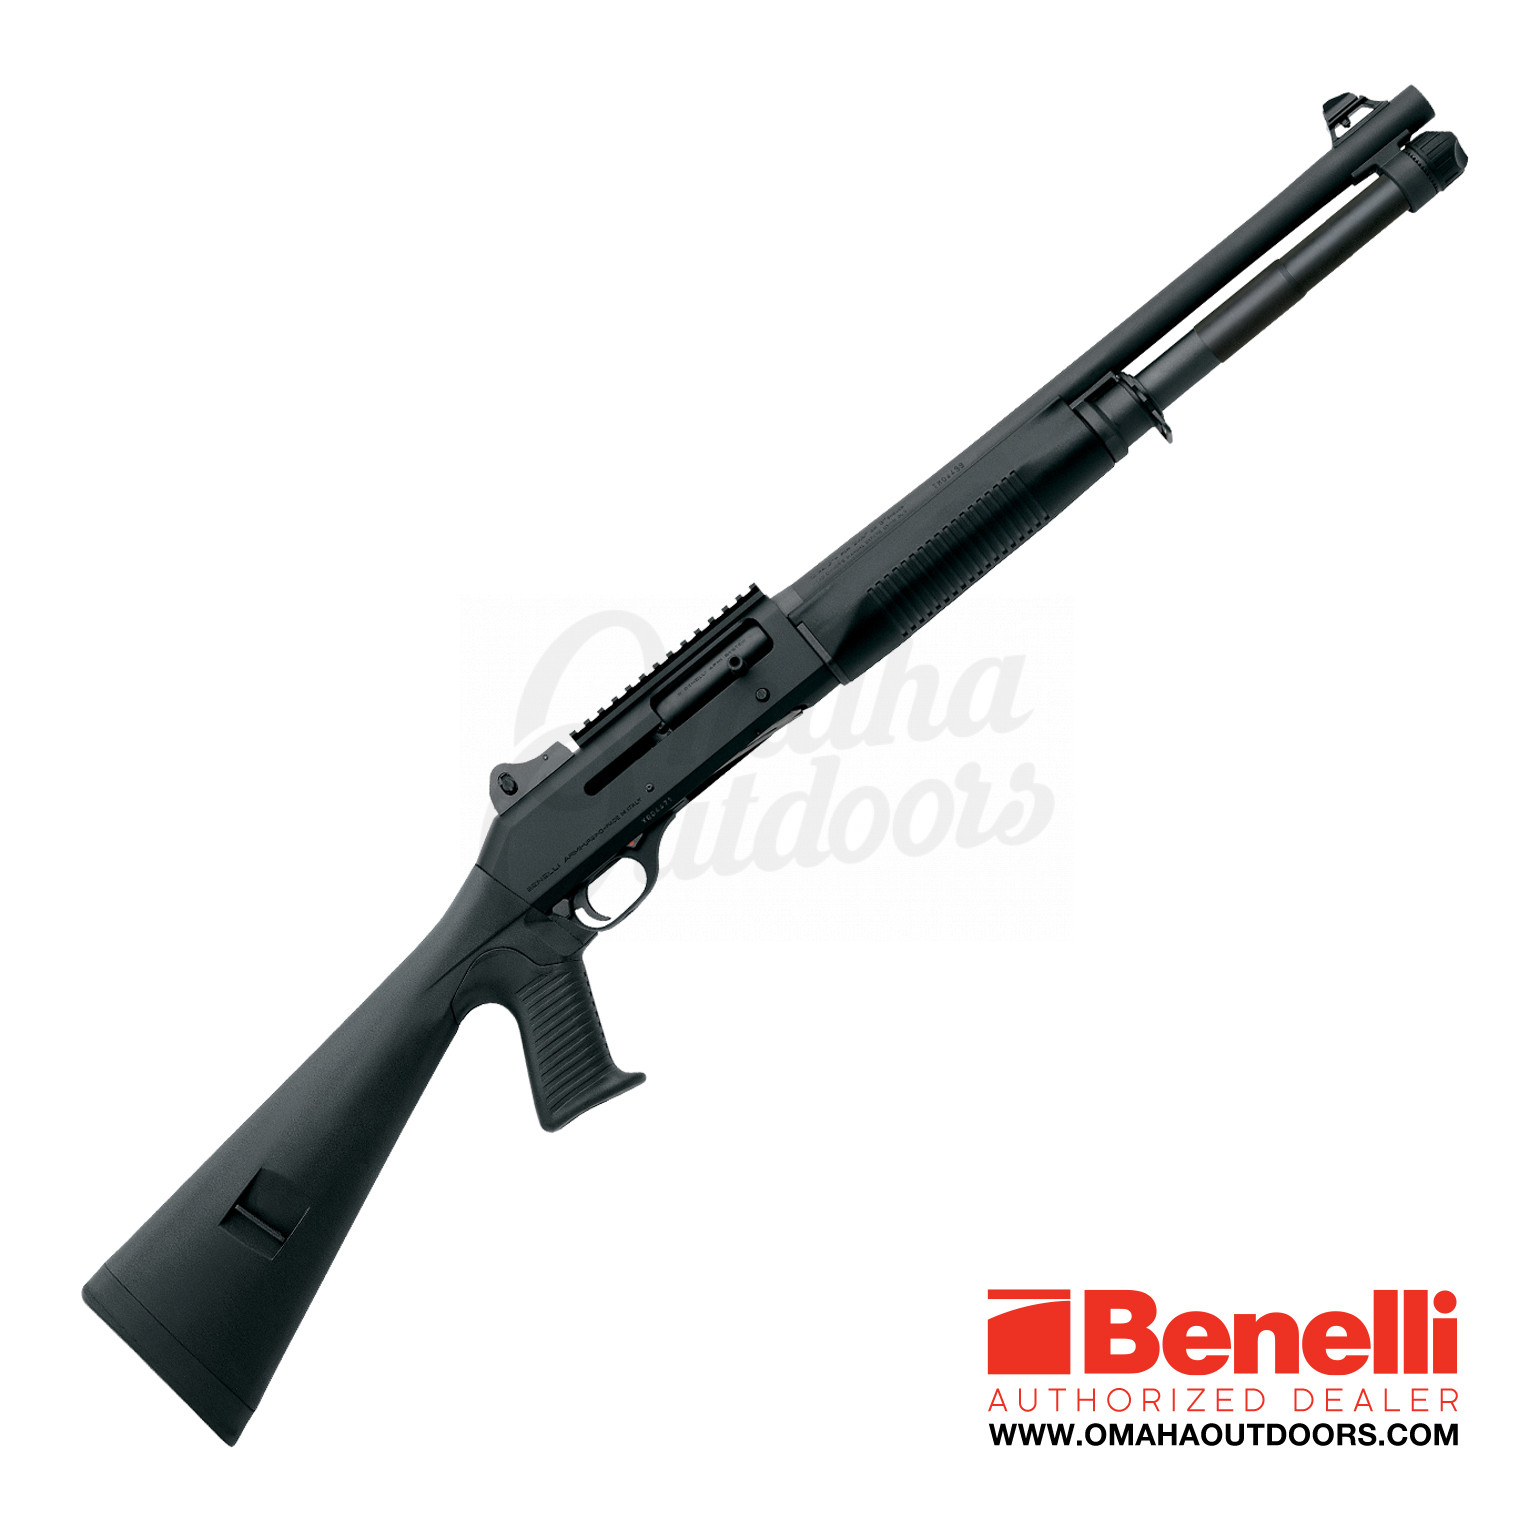 Benelli LE M4 Tactical Semi-Auto Shotgun 12 Gauge 7 RD 18 5″ Pistol Grip  Stock 11713